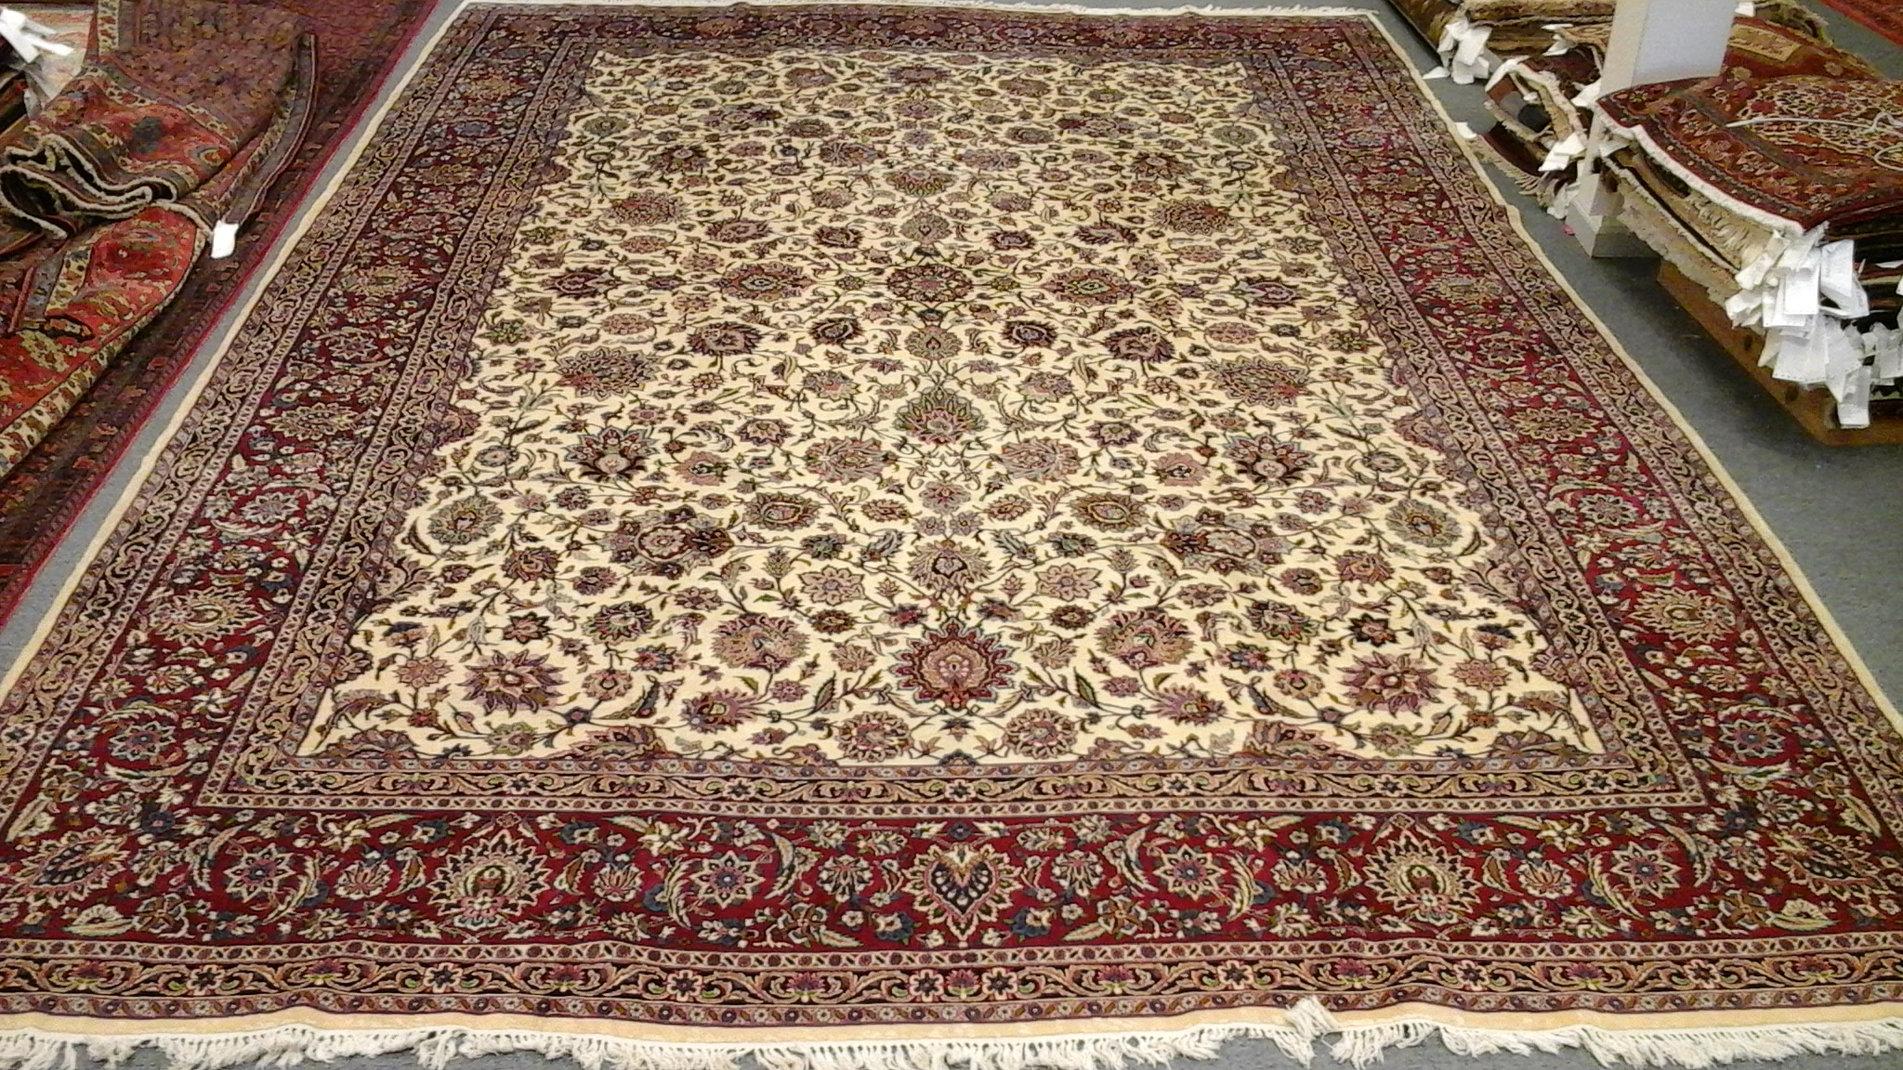 Avon Rug Gallery (formerly Moosavi Persian Rugs) Offers An Array Of  Traditional And Modern